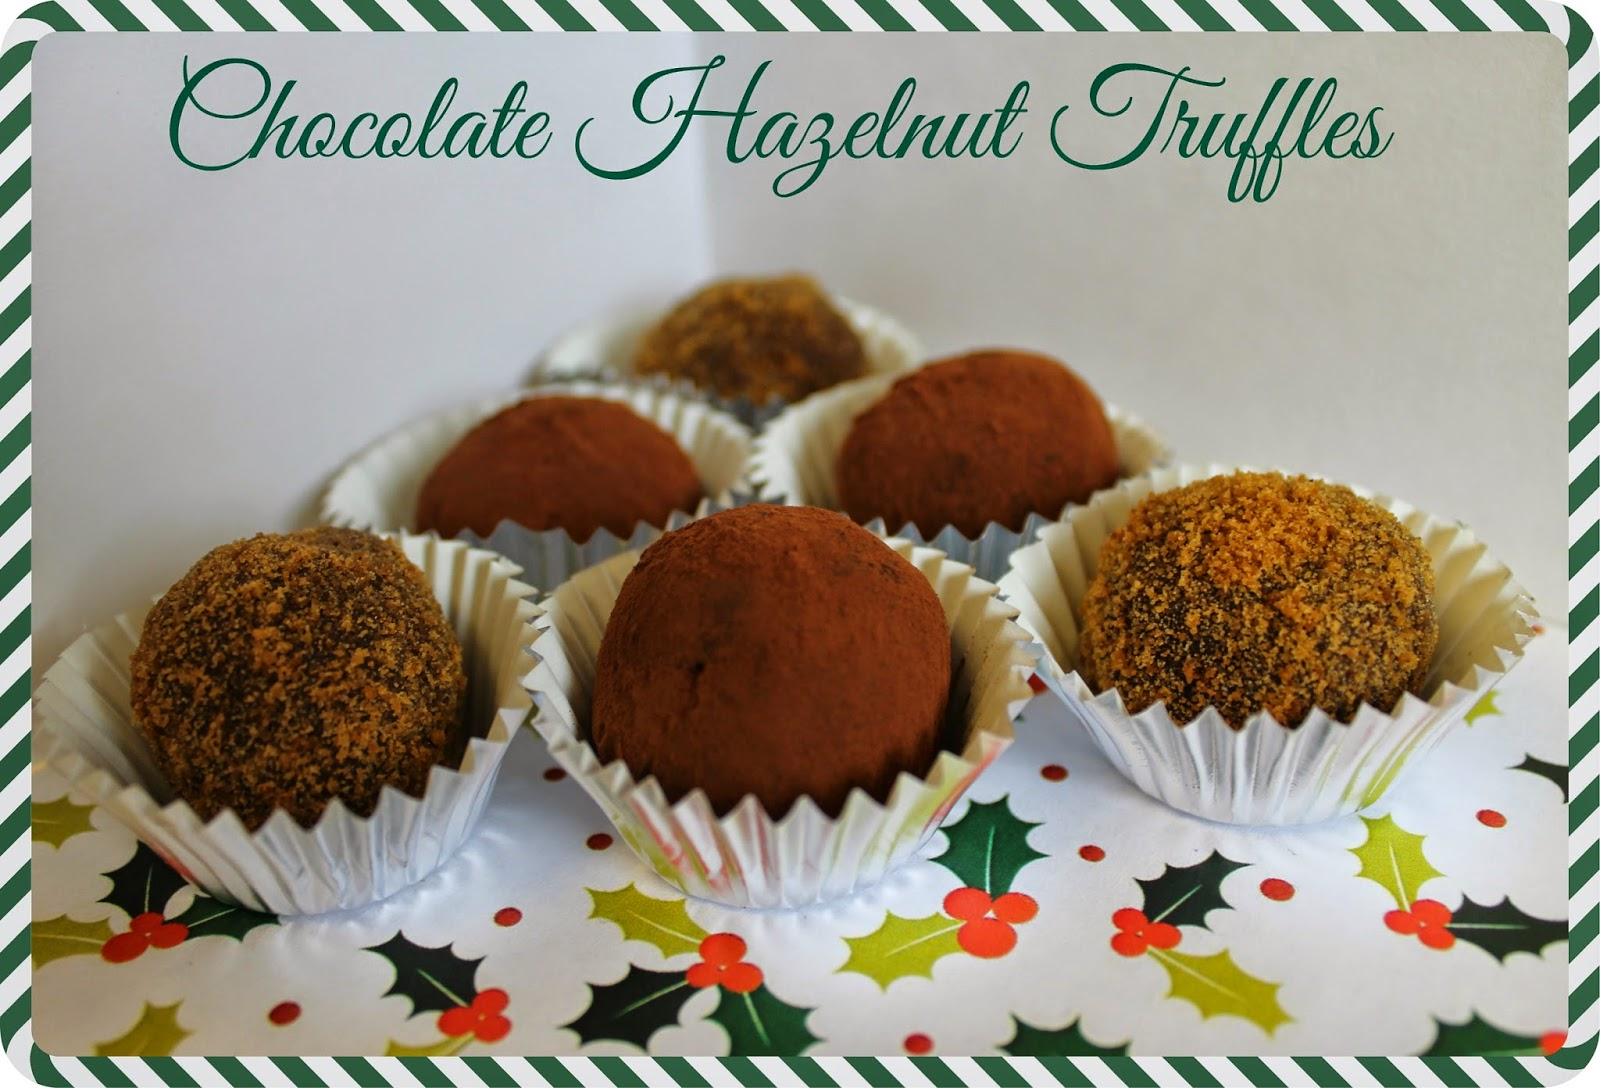 Chocolate Hazelnut Truffles (Vegan)